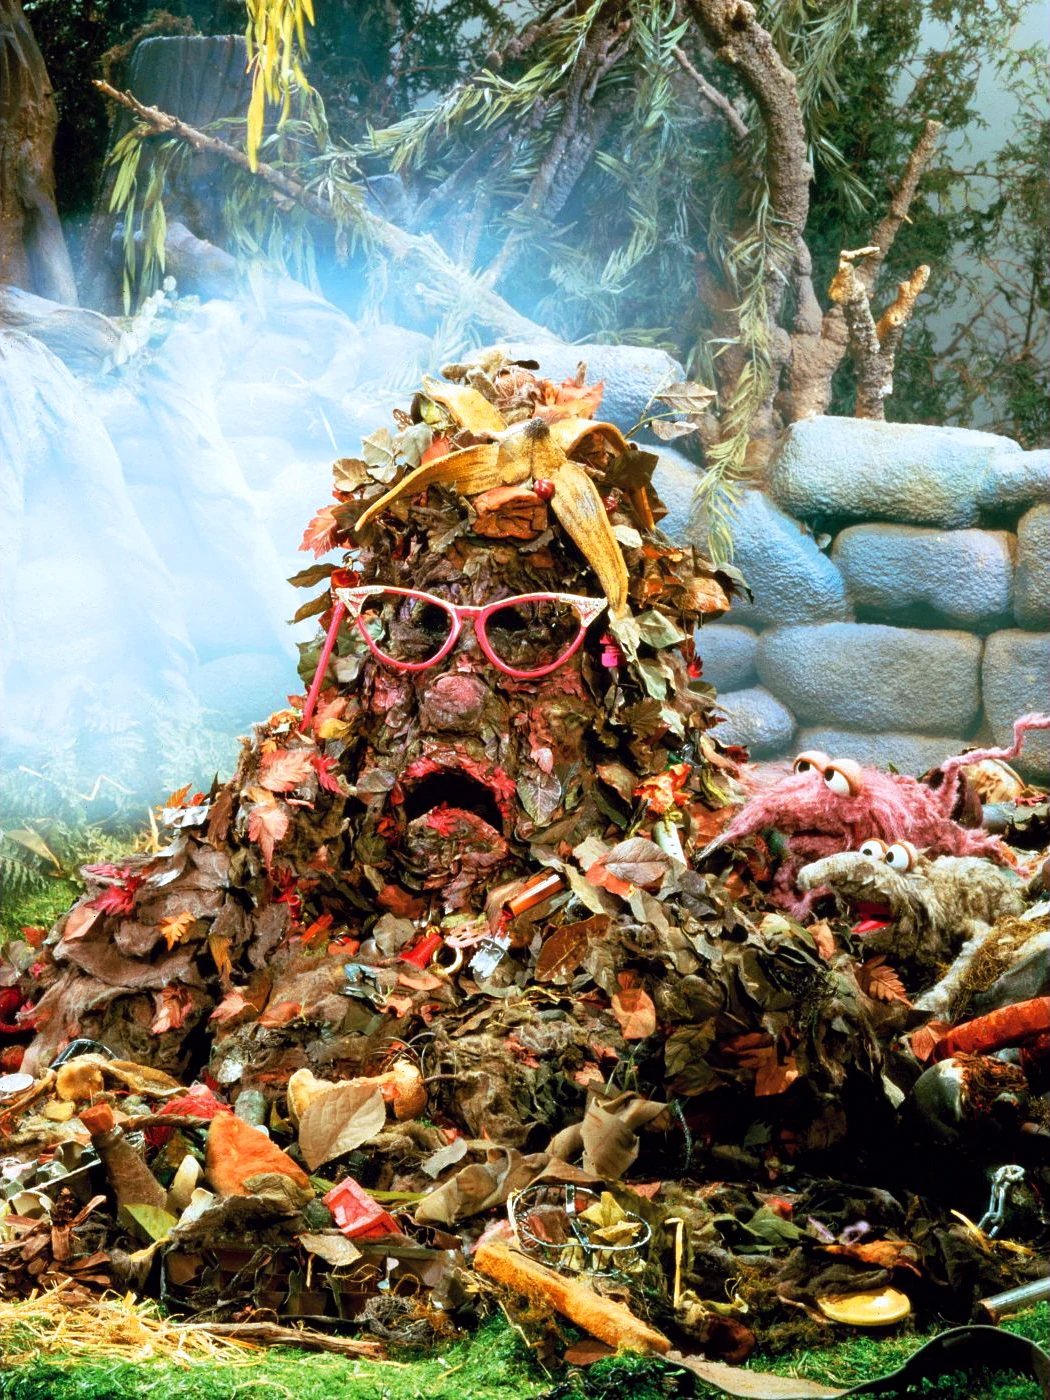 Mrs. Trash Heap from Fraggle Rock